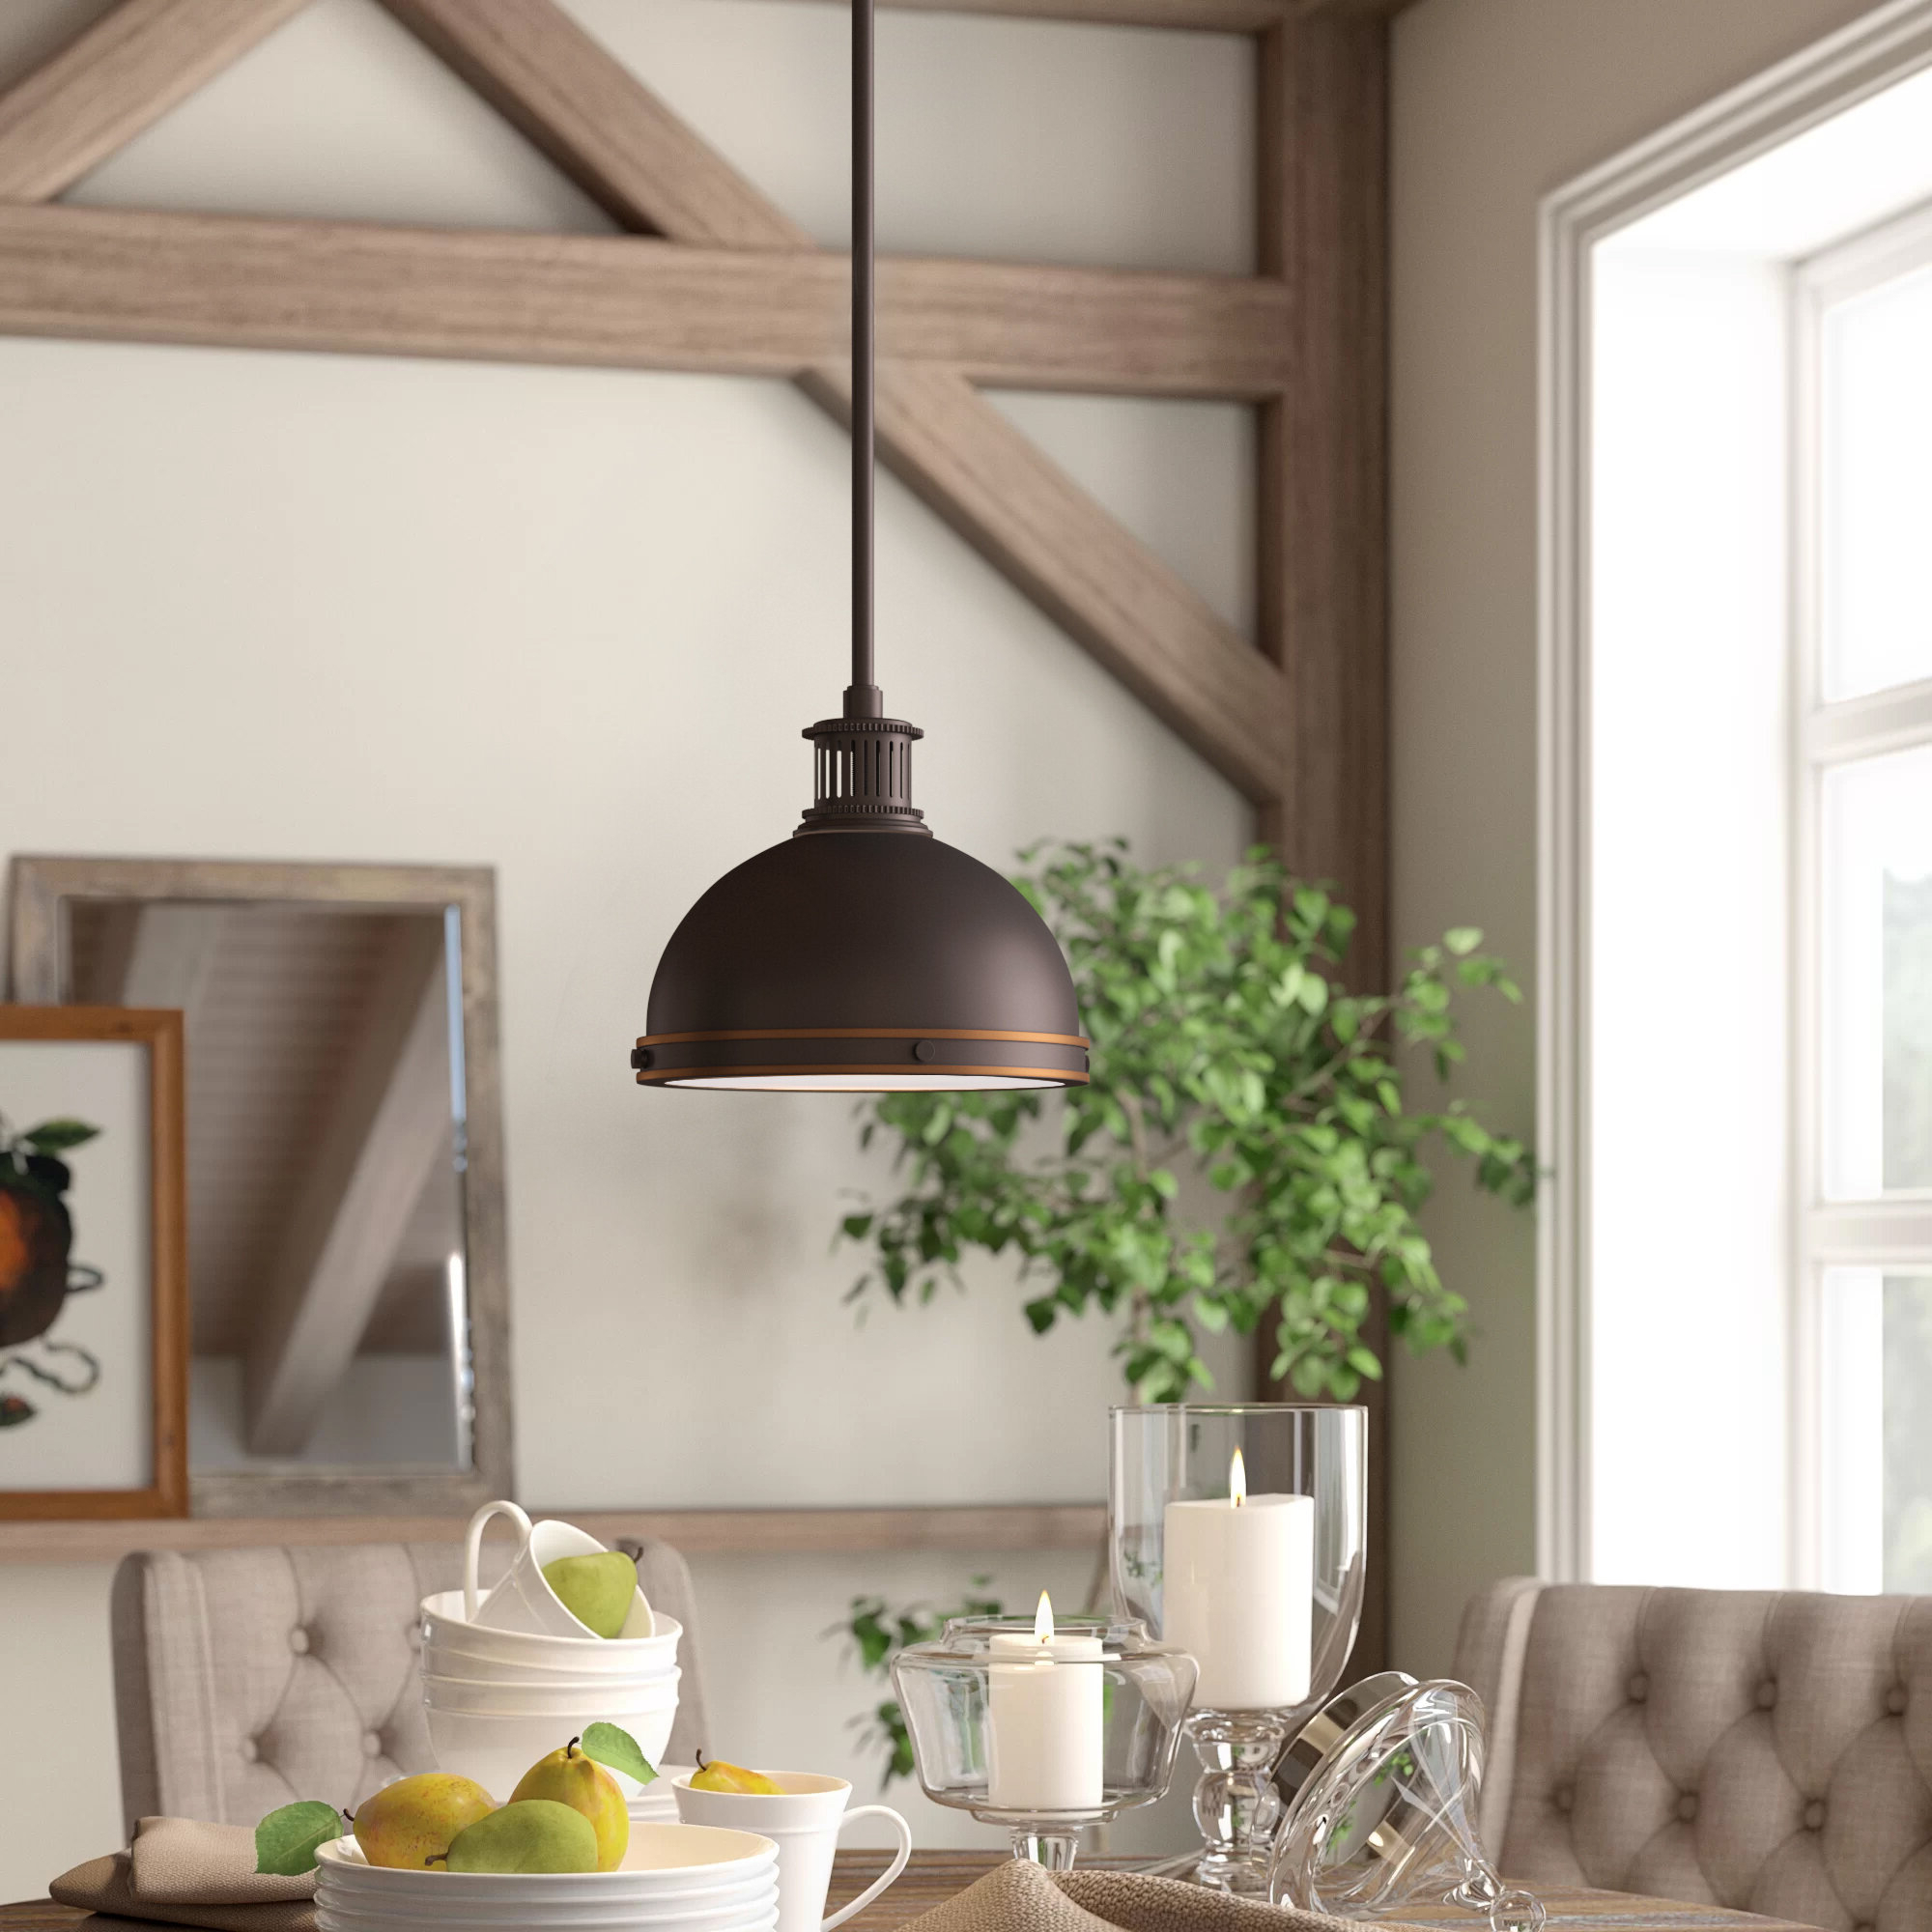 Amara 3 Light Dome Pendants Throughout Fashionable Orchard Hill 1 Light Led Dome Pendant (View 7 of 25)